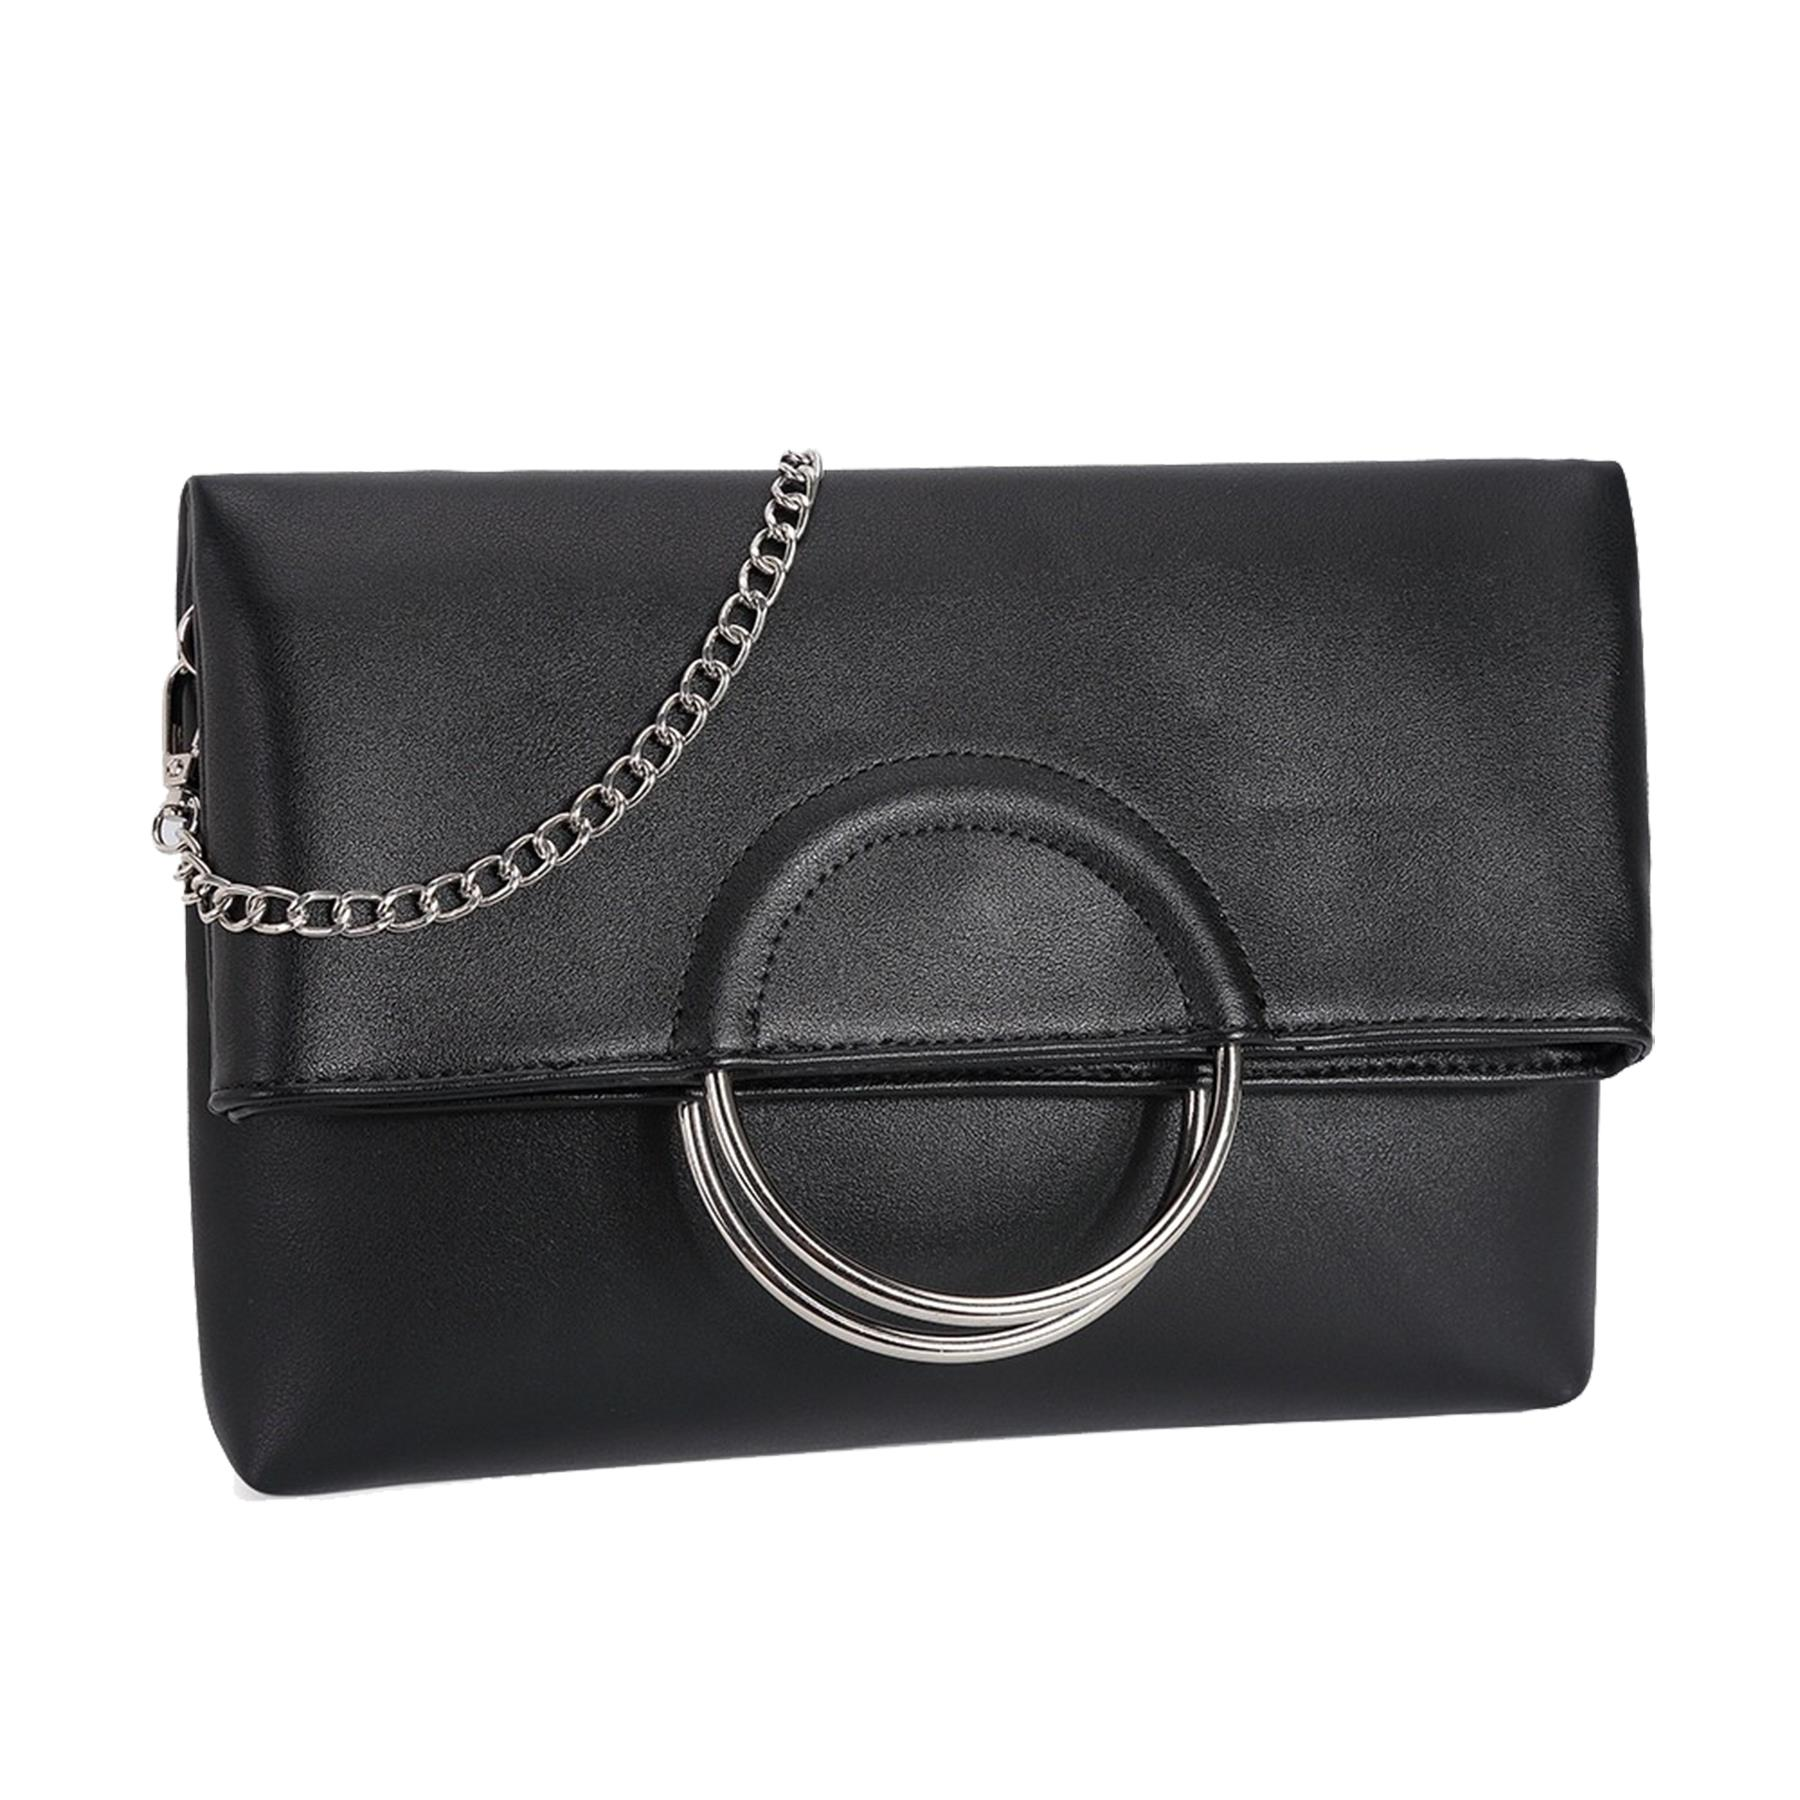 New-Women-s-Metallic-Ring-Top-Handles-Faux-Leather-Evening-Clutch-Bag thumbnail 3